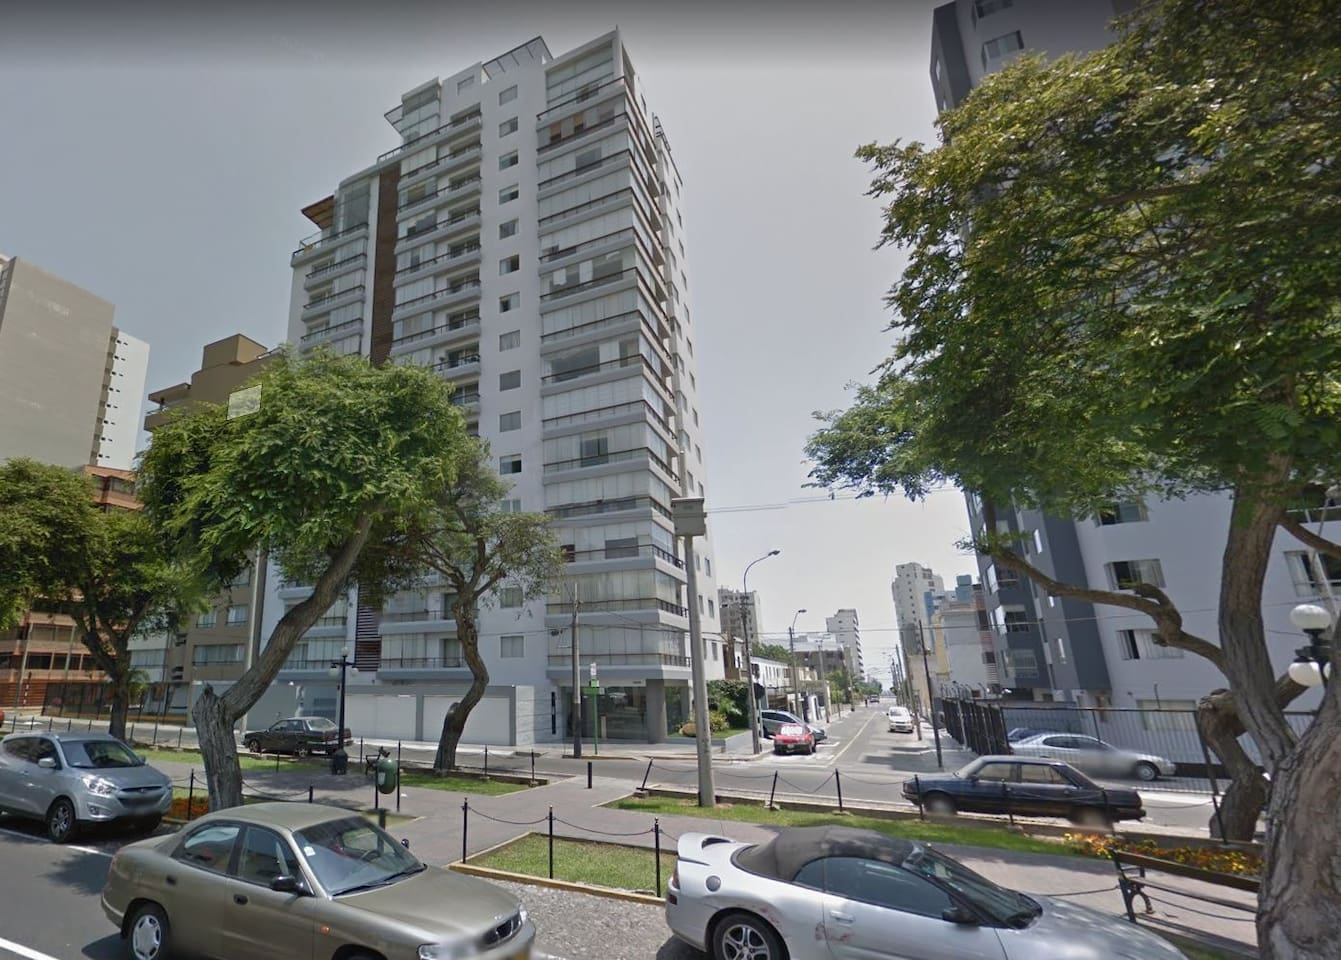 Apartment building located in Pardo Avenue in a very quiet neighborhood in Miraflores. Perfect for small families or Business Trip. 2 blocks away from the Ocean view. Perfect for biking, running, tennis and other sports.